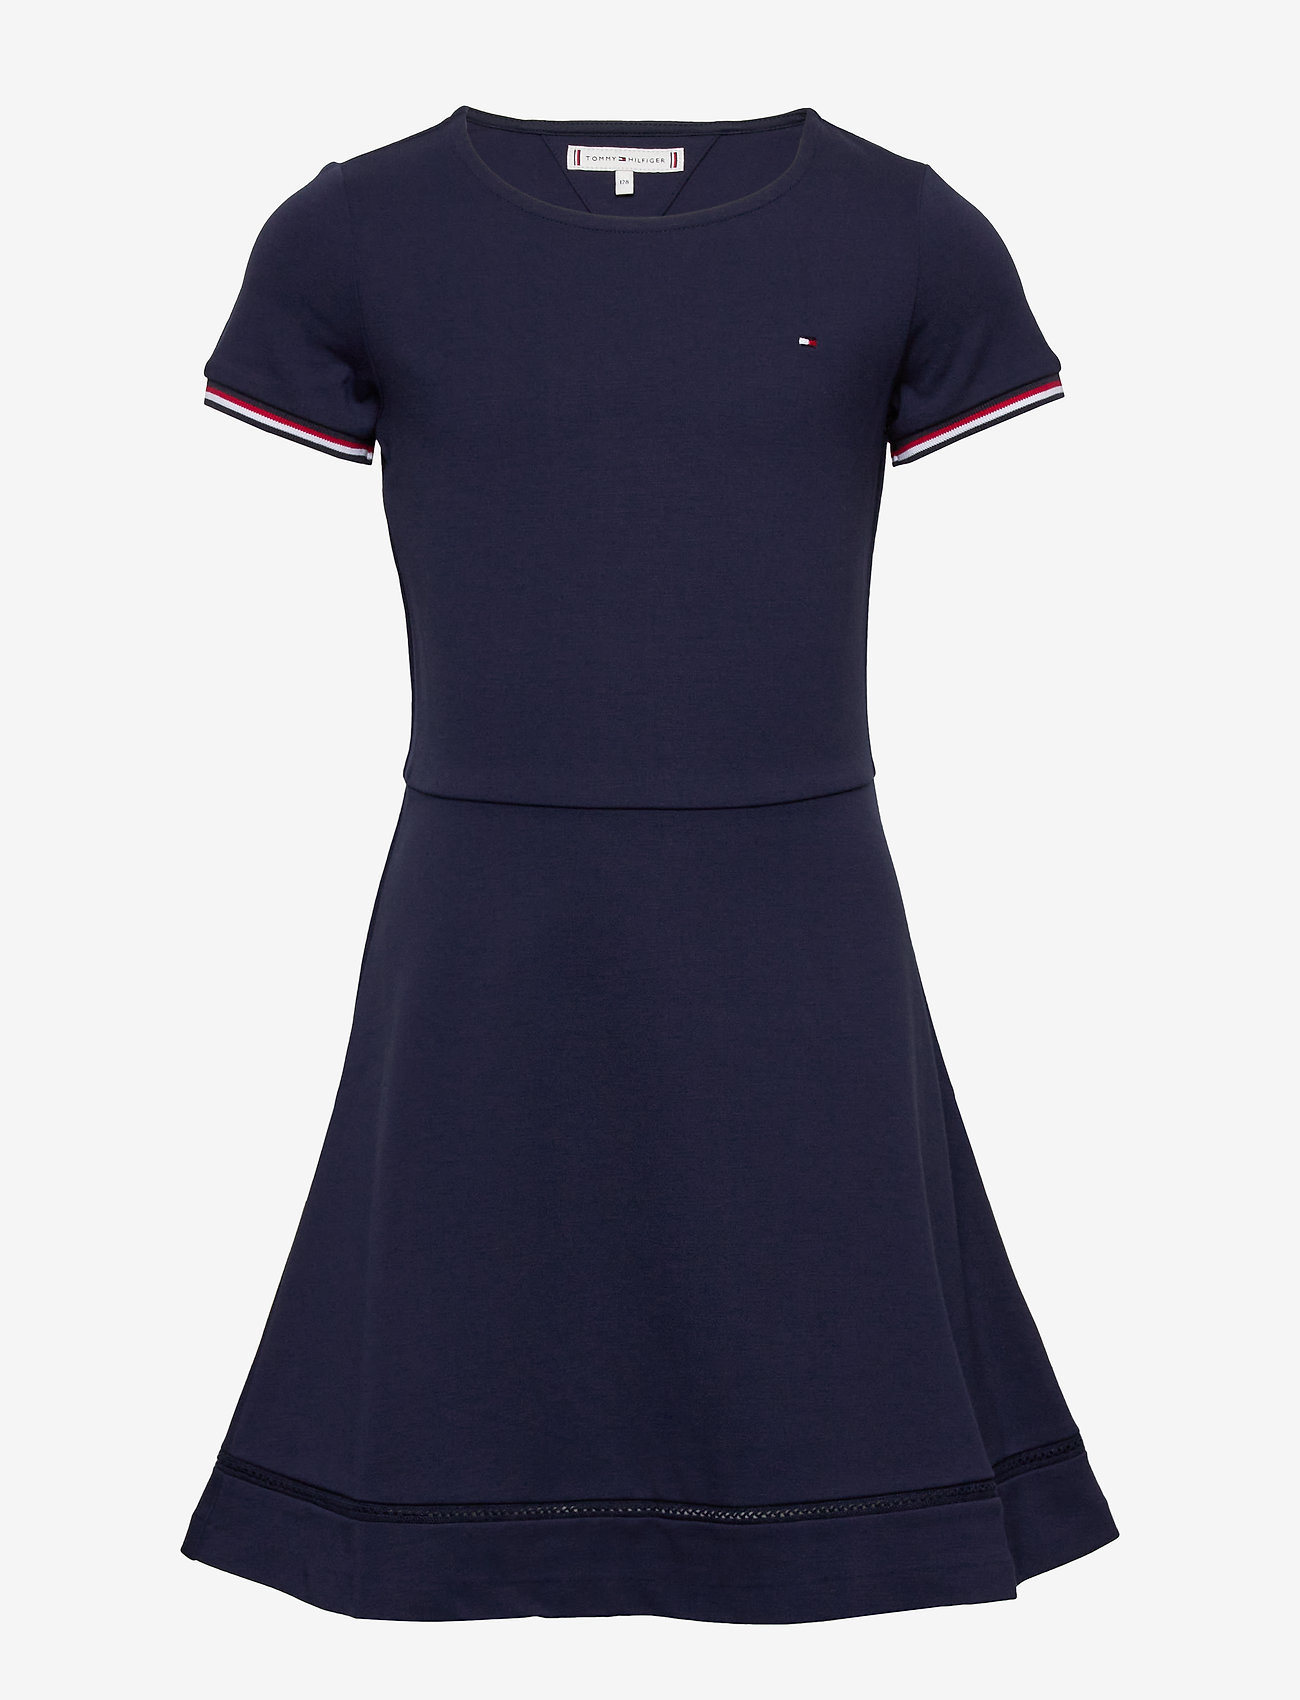 Tommy Hilfiger - ESSENTIAL SKATER DRESS - robes - twilight navy - 0